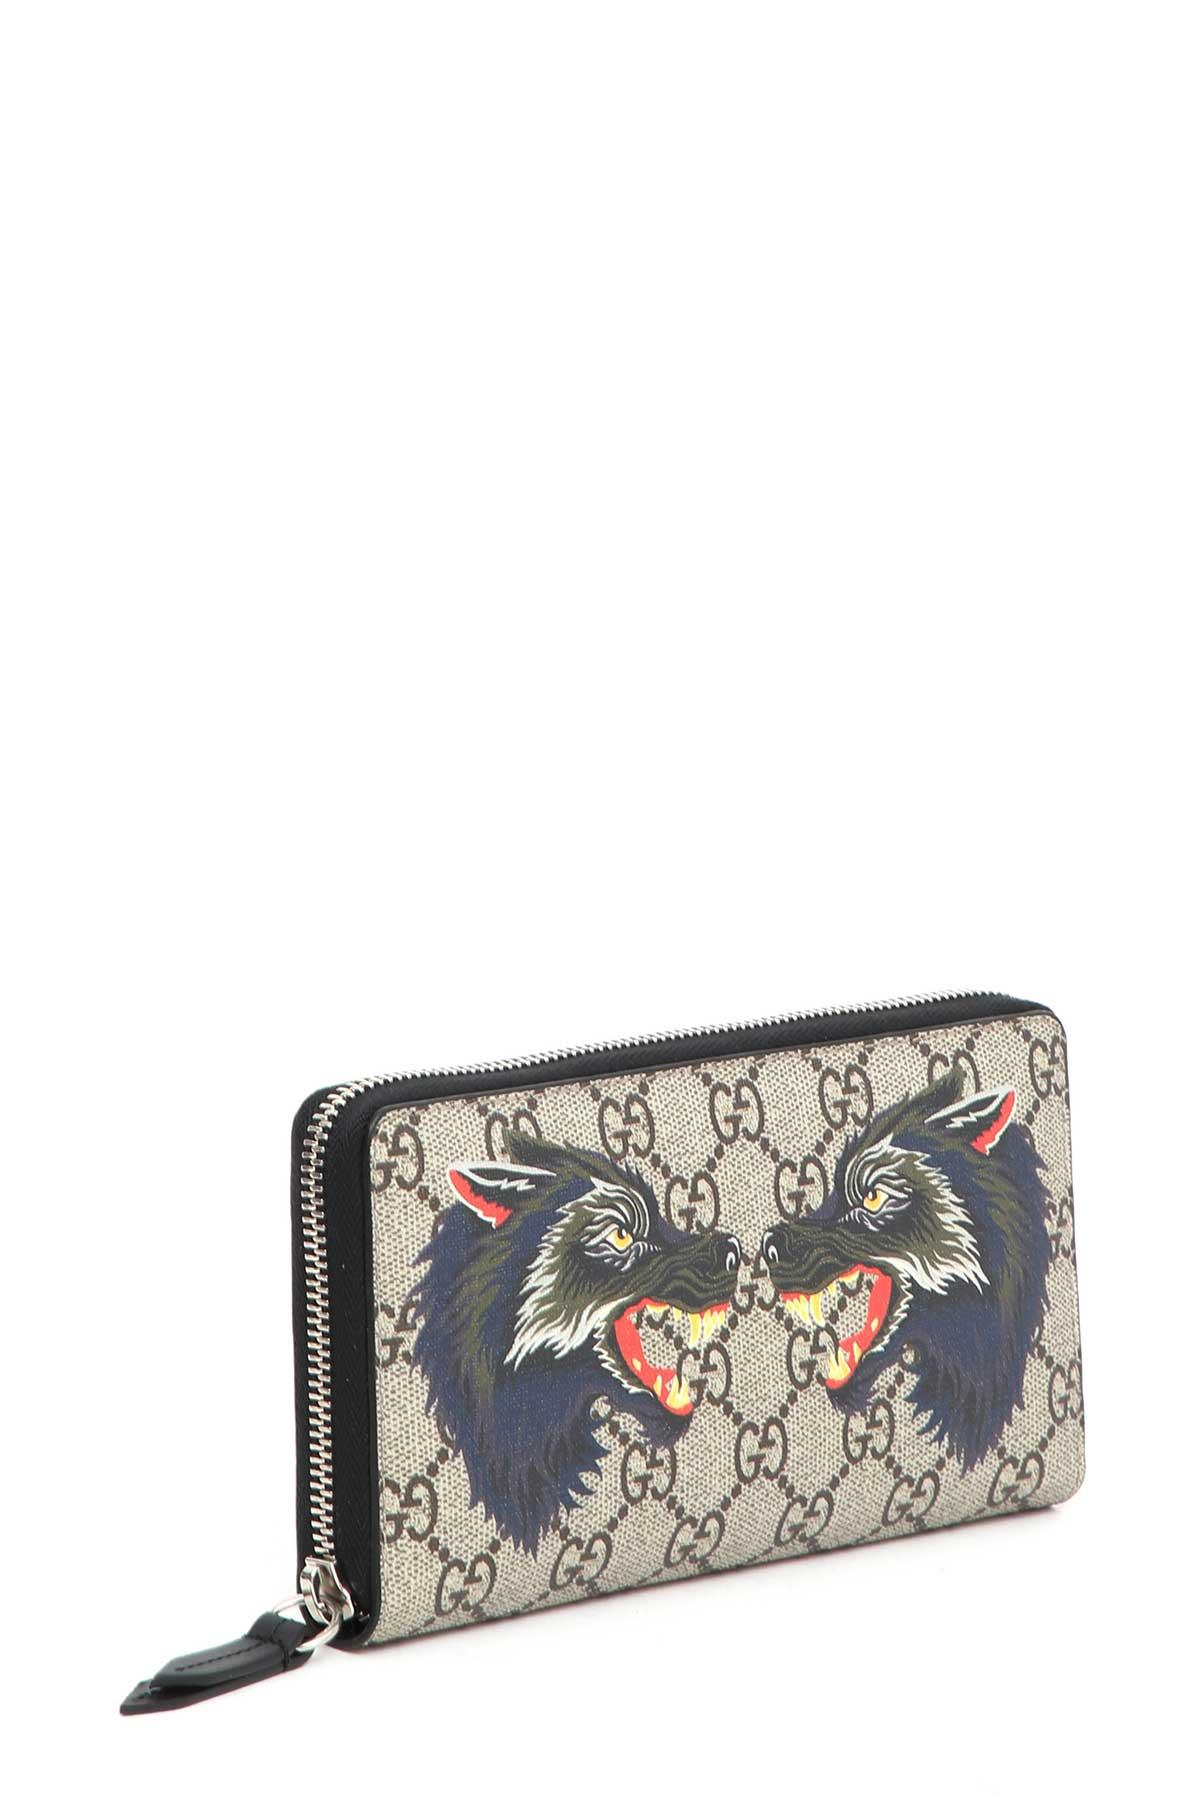 4a4139254a48 Gucci Wallet With Wolf Print In Multi | ModeSens